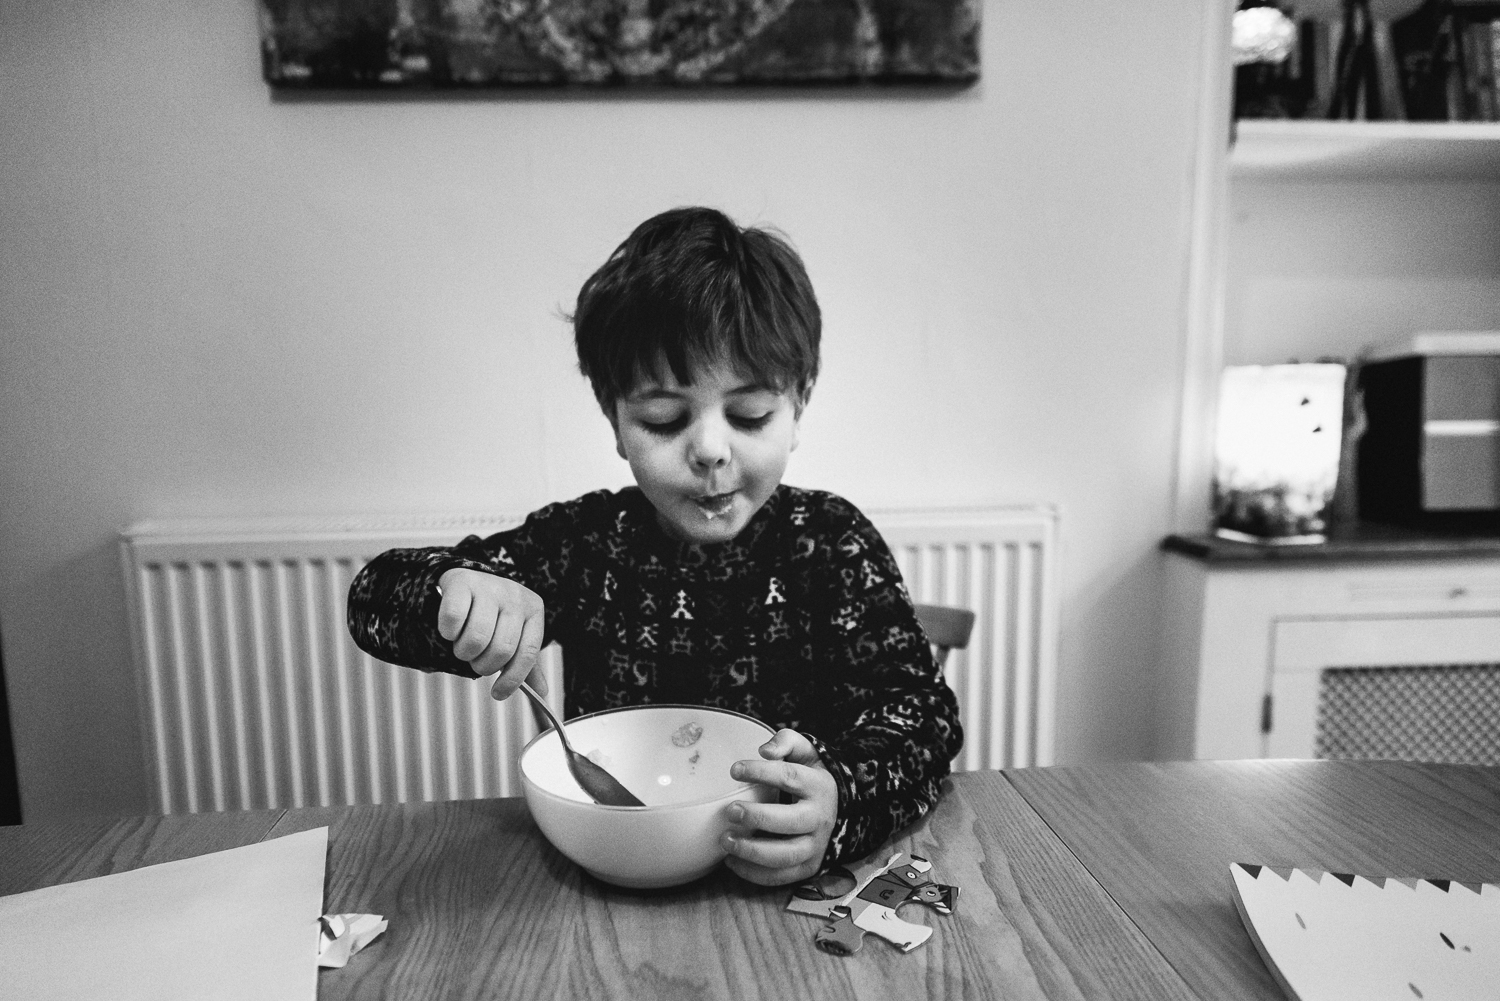 Copy of Breakfast scene boy eating his bowl of cereal with milk moustach